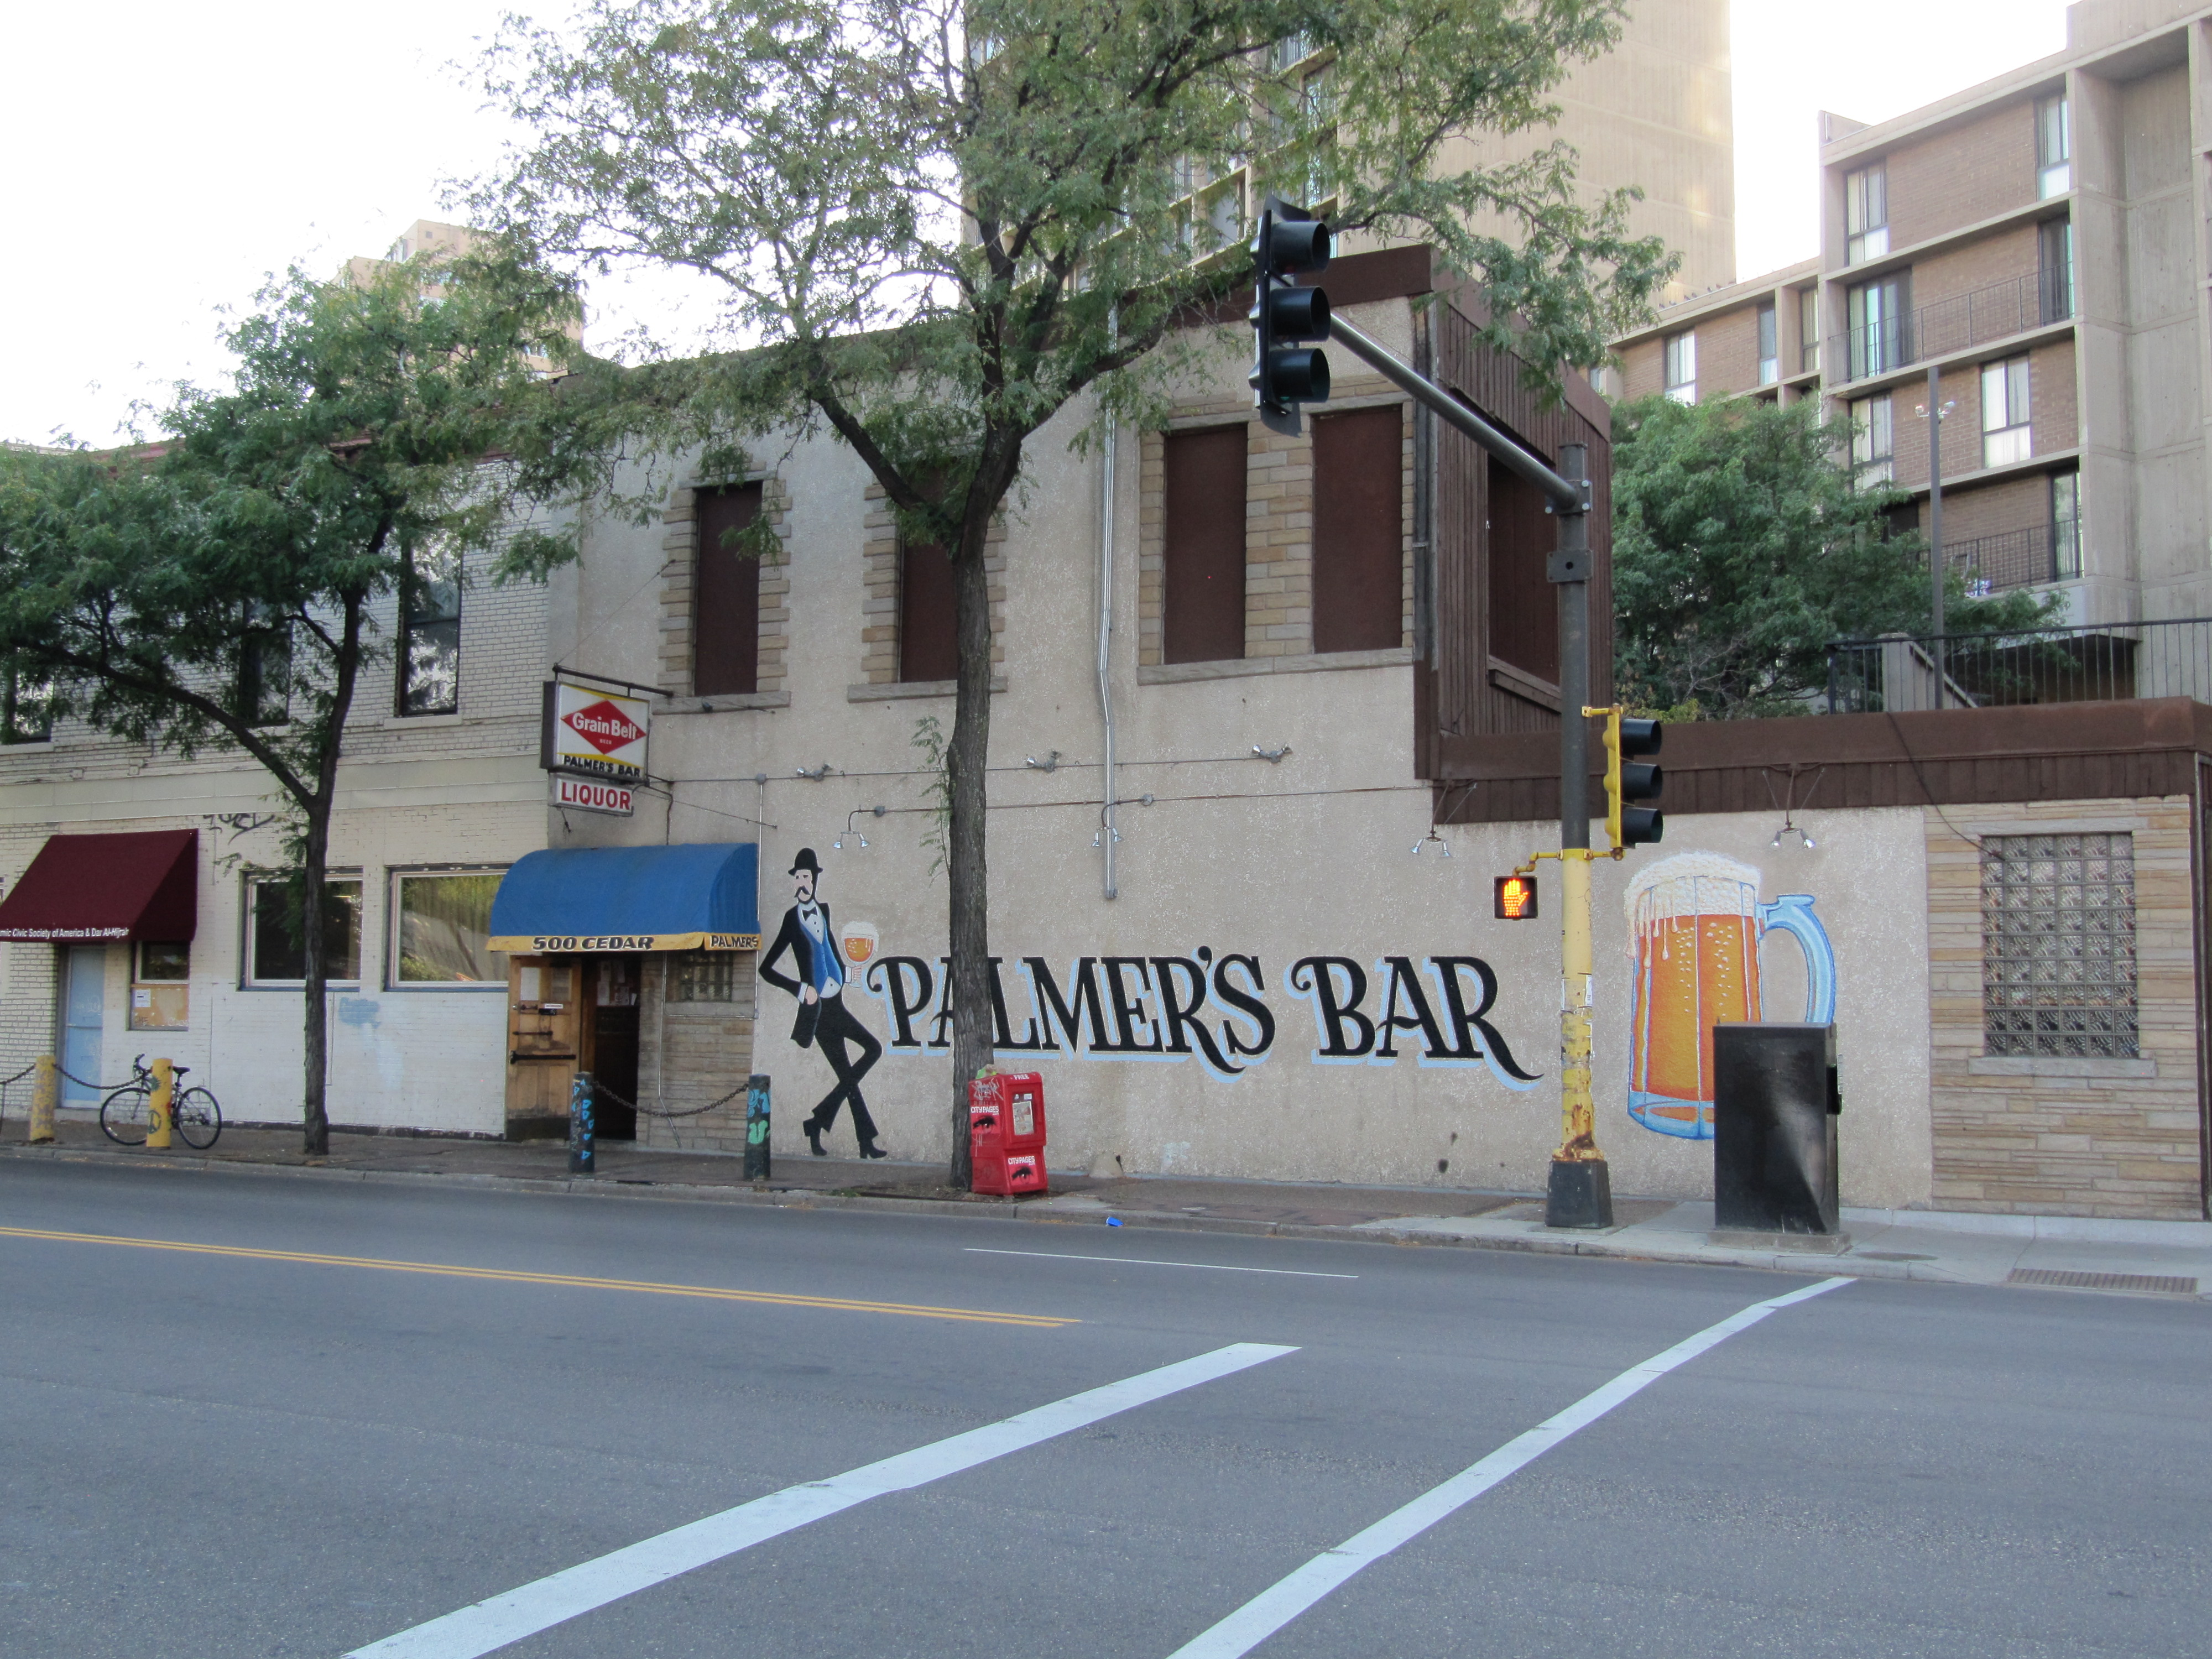 Palmer's Bar and the iconic mural are fixtures in Minneapolis' Cedar-Riverside neighborhood // Photo by Ed Kohler, Flickr